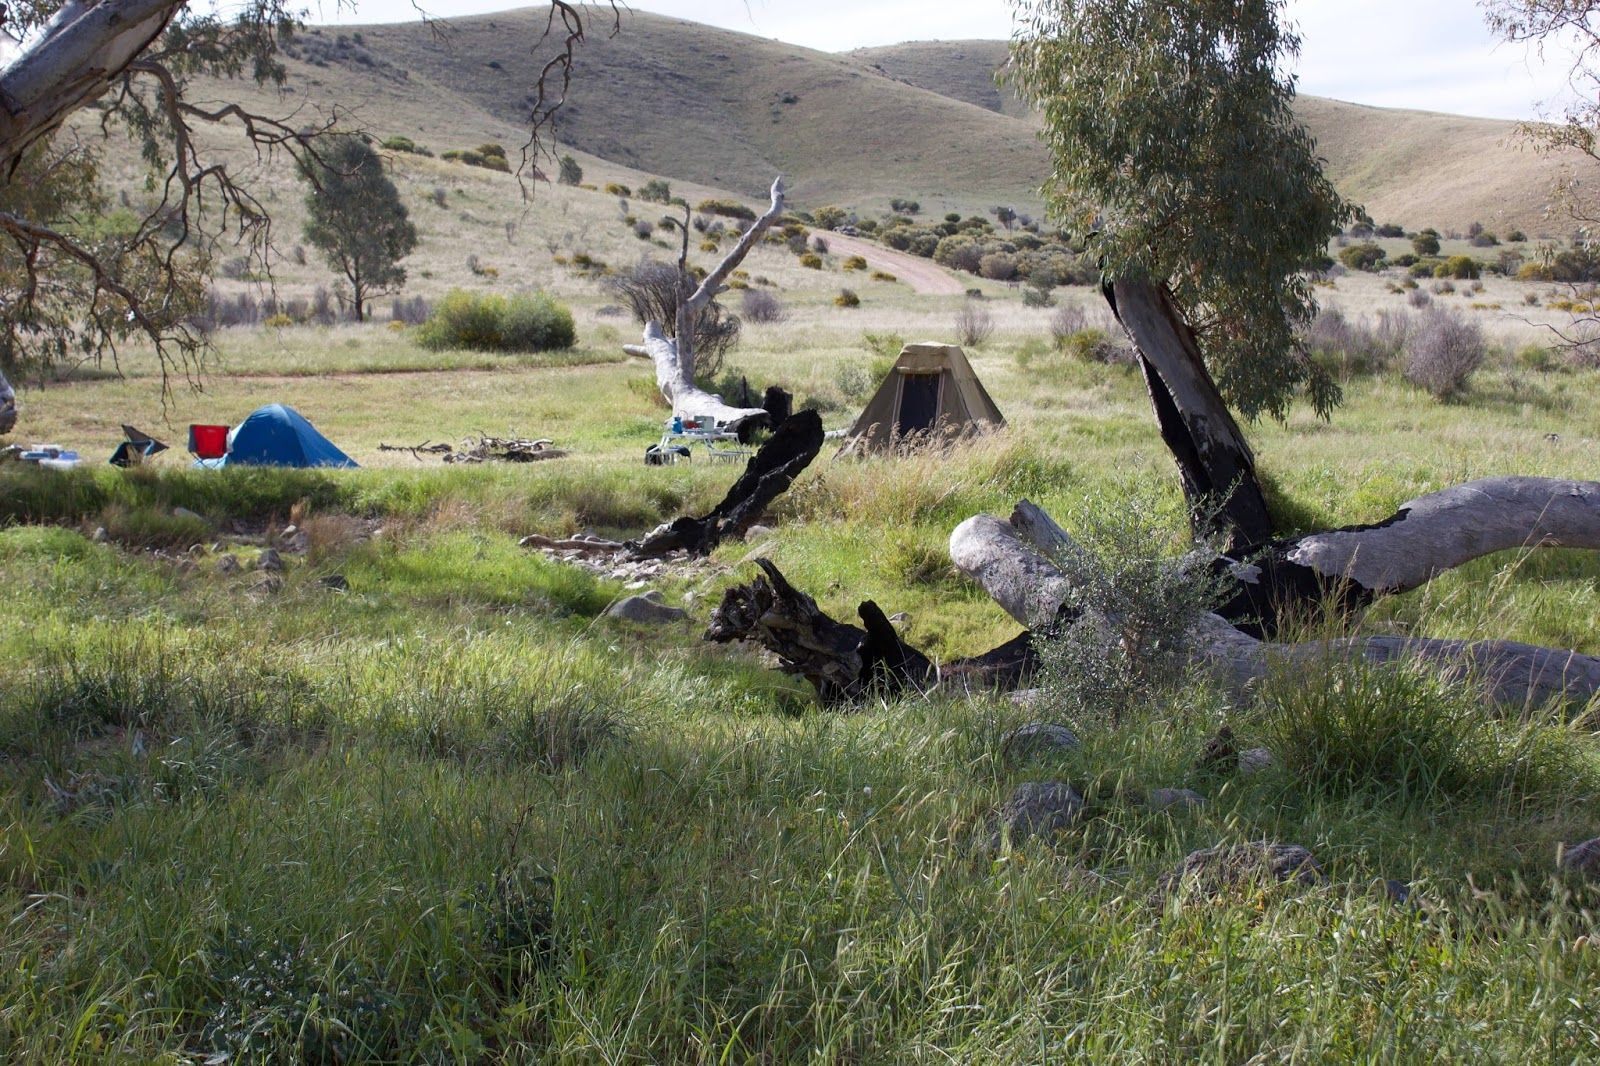 Camping destinations just outside of Adelaide